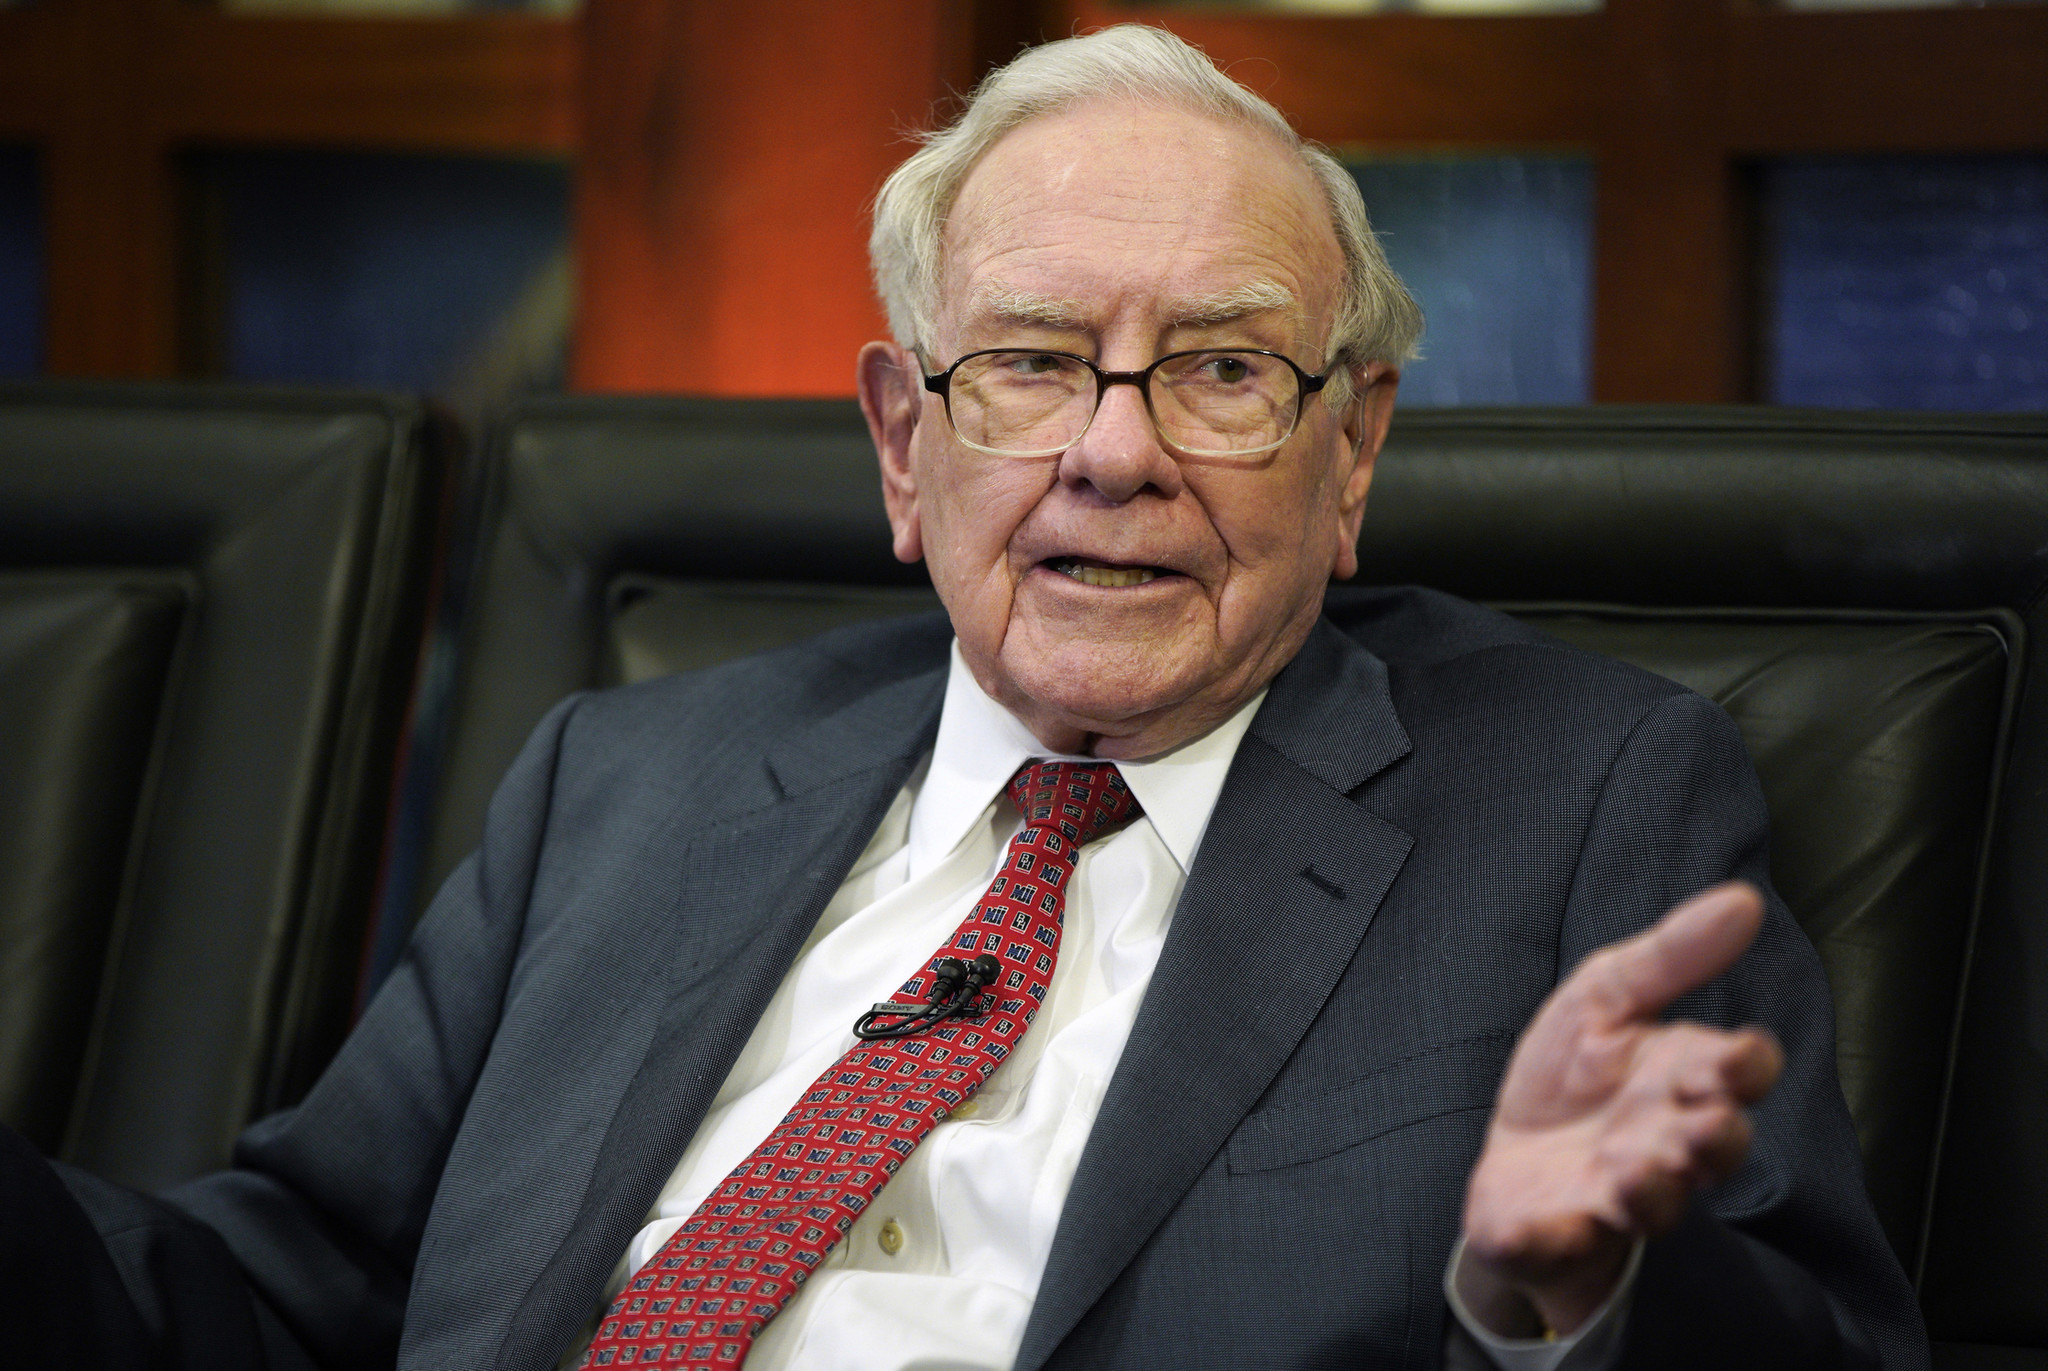 Warren Buffett encourages investors to bet on American economy in shareholder letter